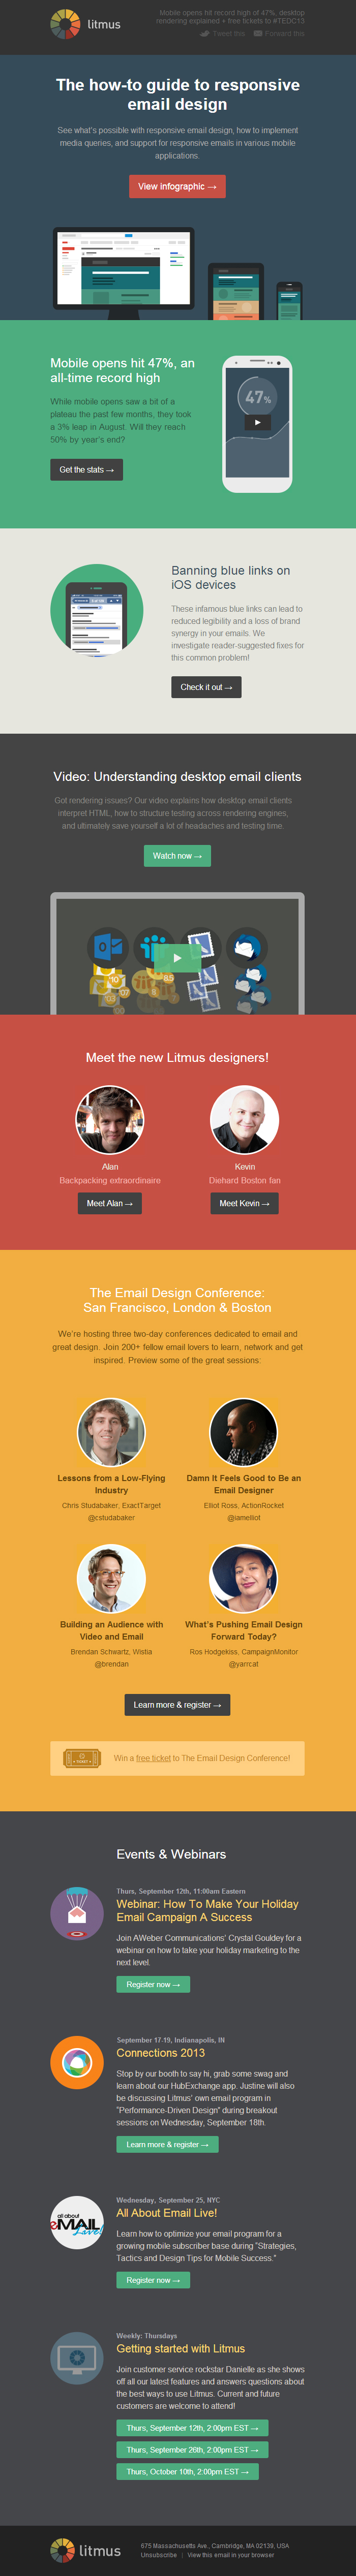 Litmus: The infographic guide to responsive email design (Standout ...